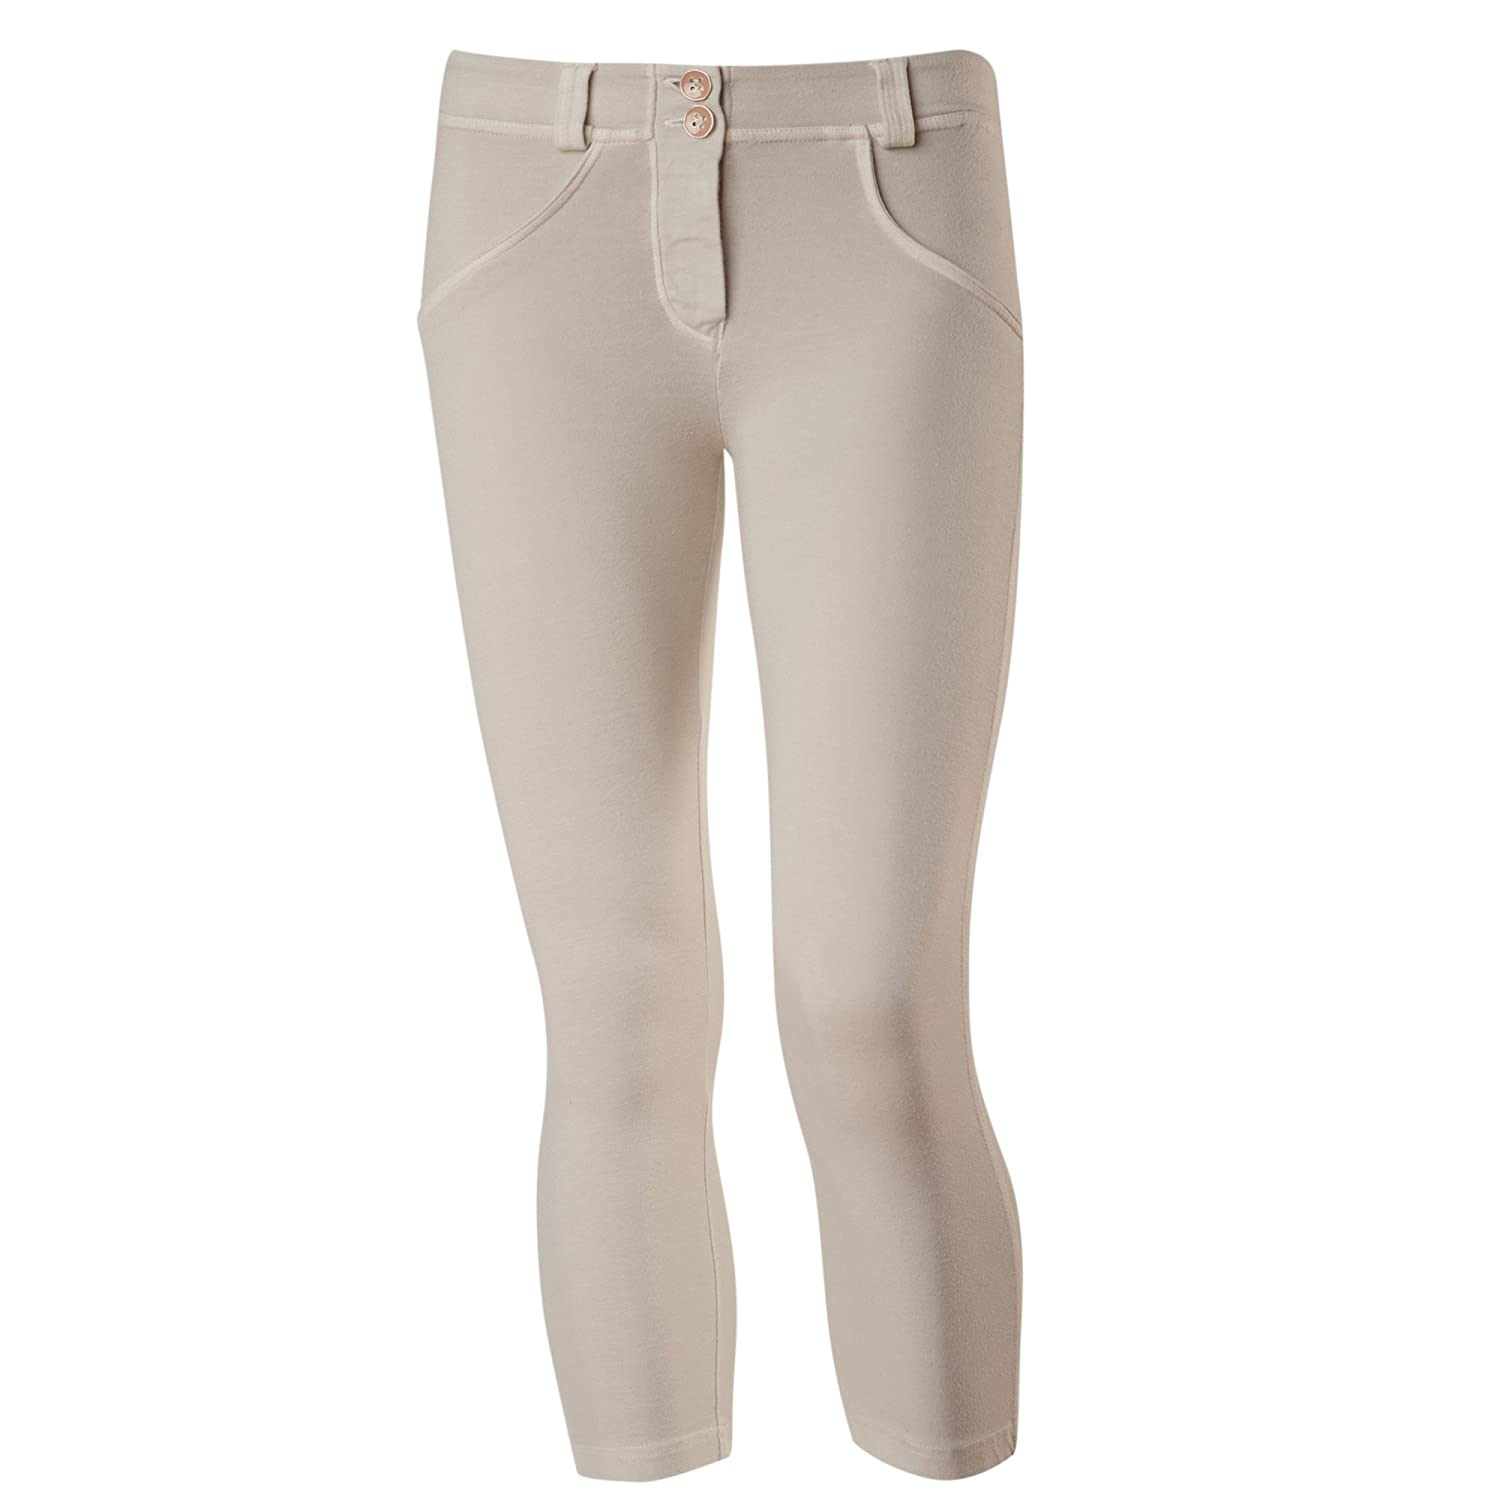 FREDDY WR.Up Shaping Effect Capri Pants WRUPSNUG8 (Beige, S)